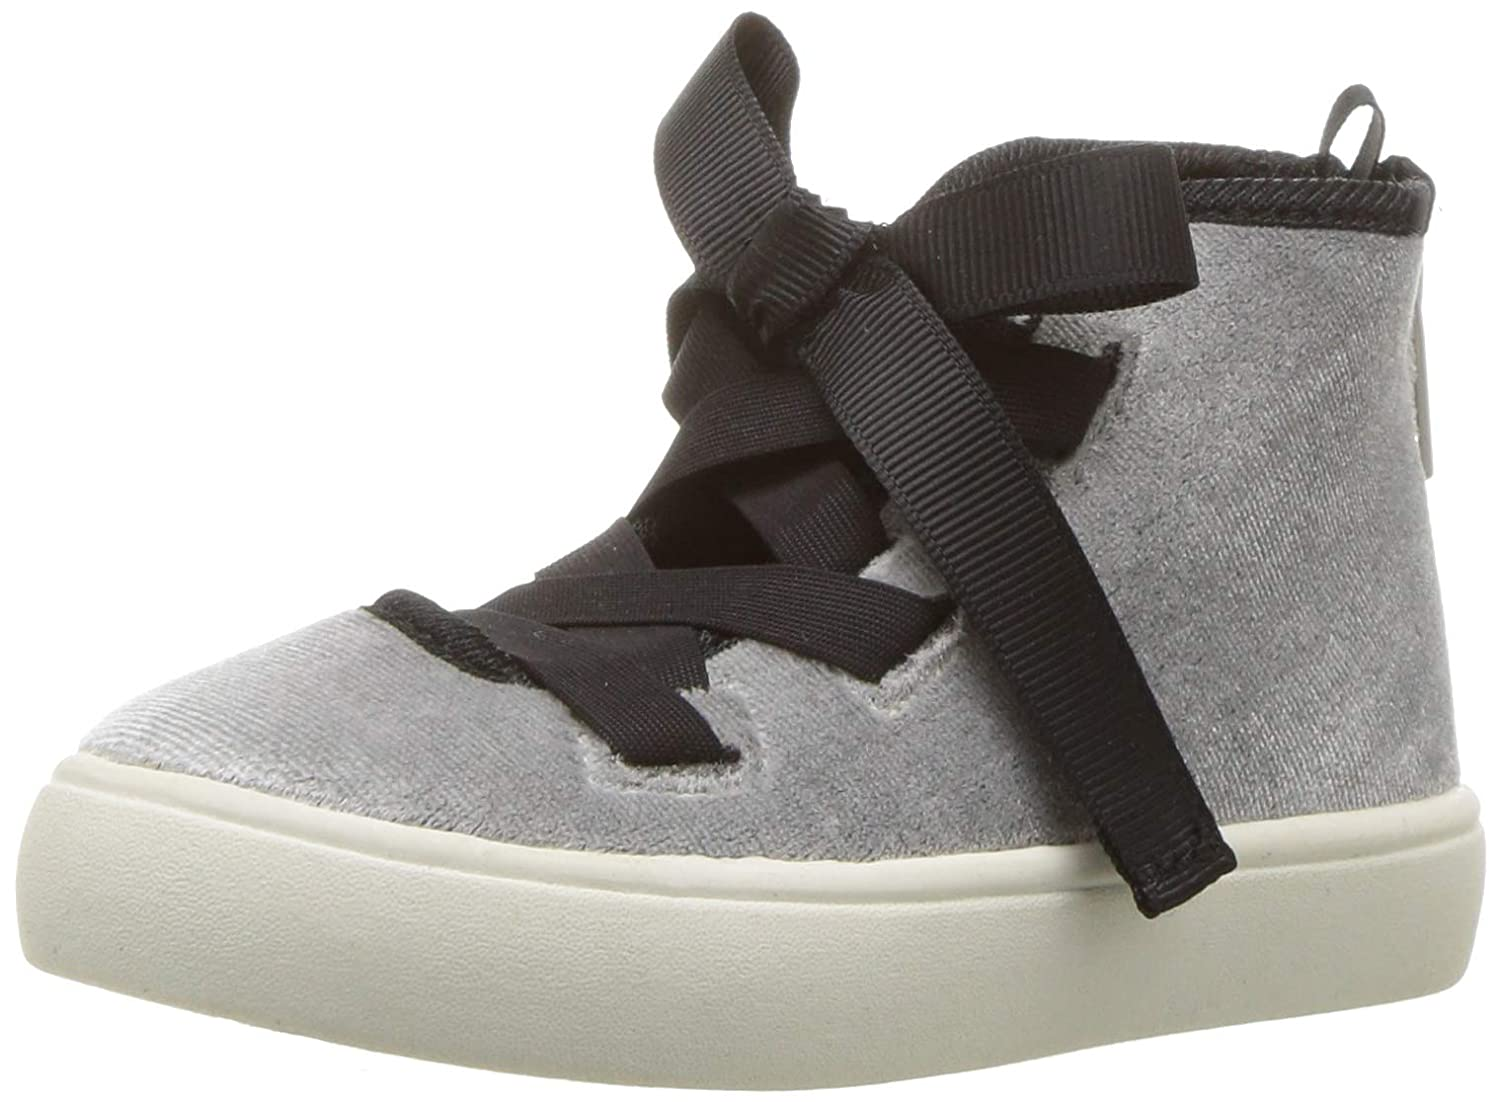 Carter's Kids Girl's Anisha Grey Casual High-top Ballet Flat Carter' s CF180462